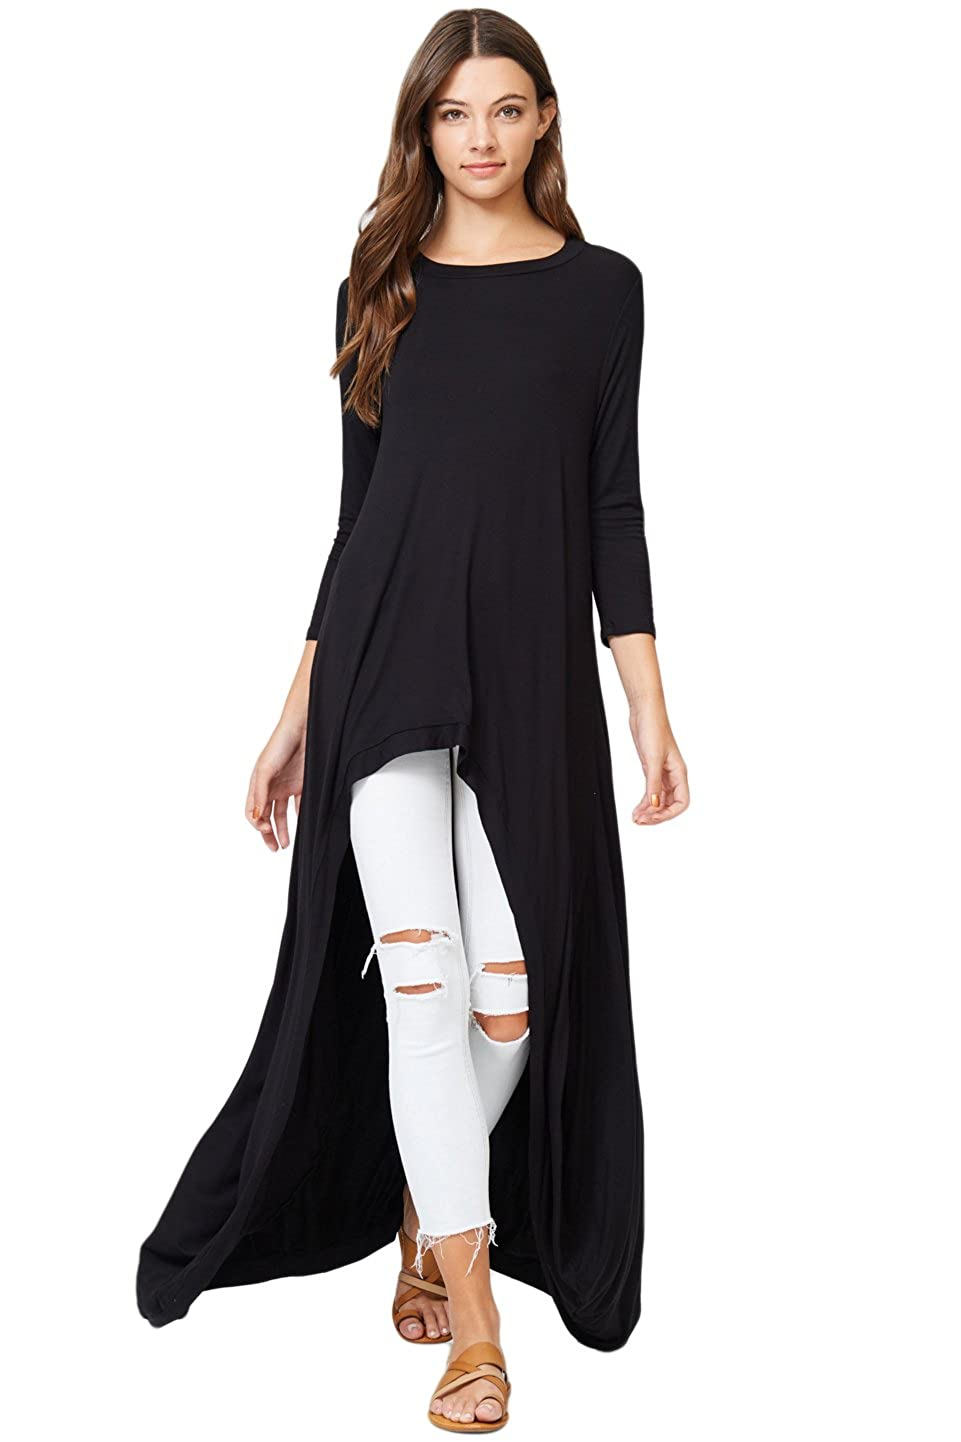 d1d065accd Annabelle 3 4 Sleeve High Low Casual Long Maxi Tunic Tops at Amazon Women s  Clothing store